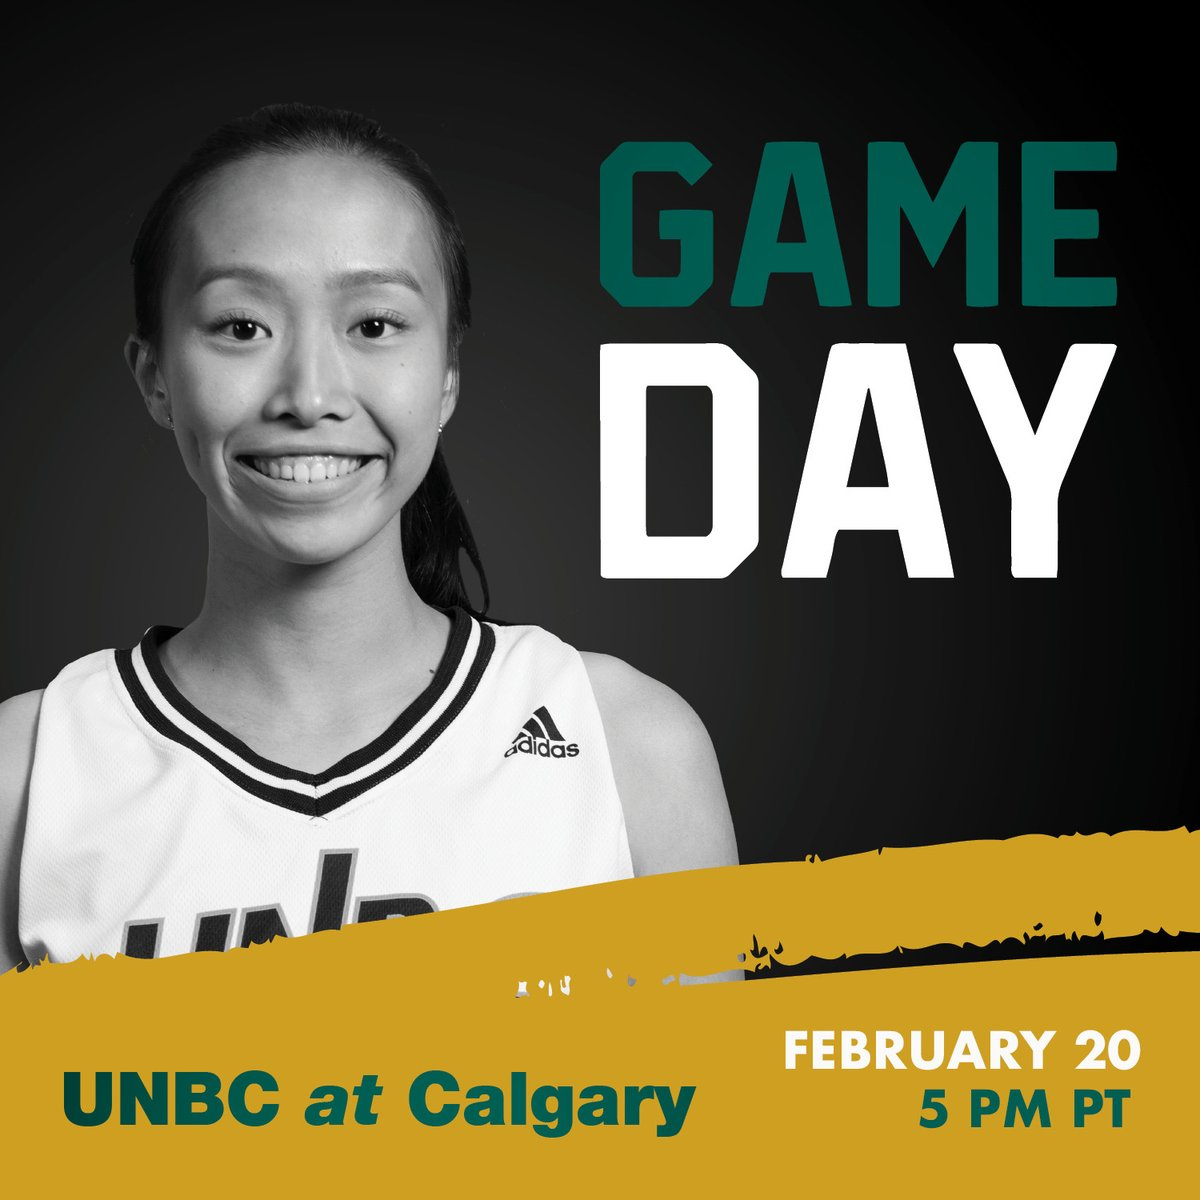 GAMEDAY!! Lucy Guan  & @UNBCWomensBball take on the @DinosWBB tonight in a single-game elimination @CanadaWest playoff matchup! Tipoff it set for 5 PM PT, and you can watch it on CW TV! #gotwolves pic.twitter.com/rUPabXZkzW